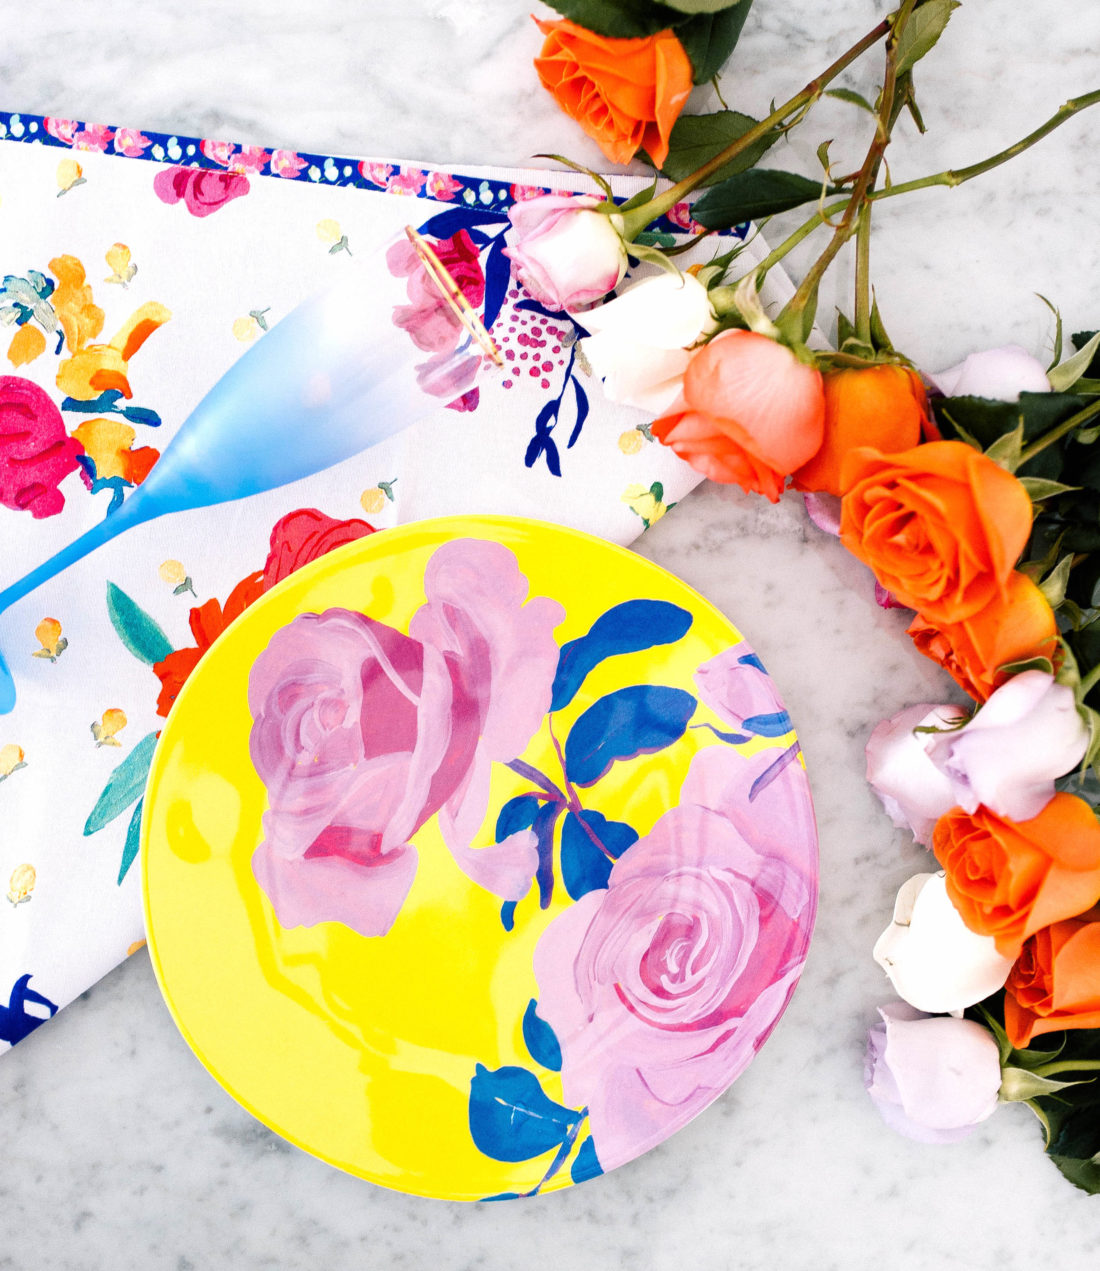 Eva Amurri Martino shares some brightly colored flowered melamine plates as part of her monthly obsessions product roundup